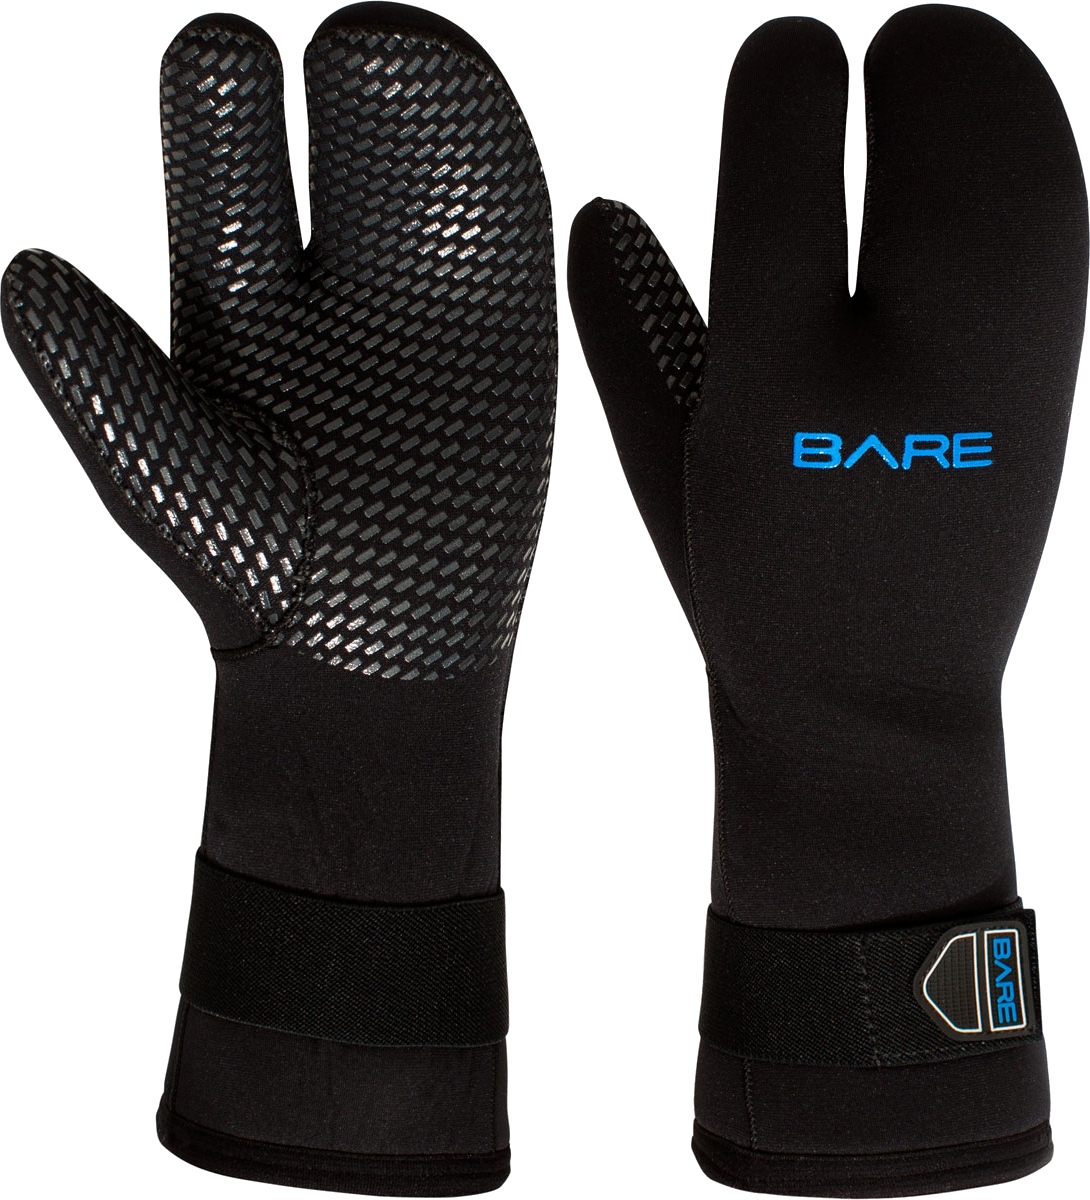 Bare 7mm Three-Finger Mitt